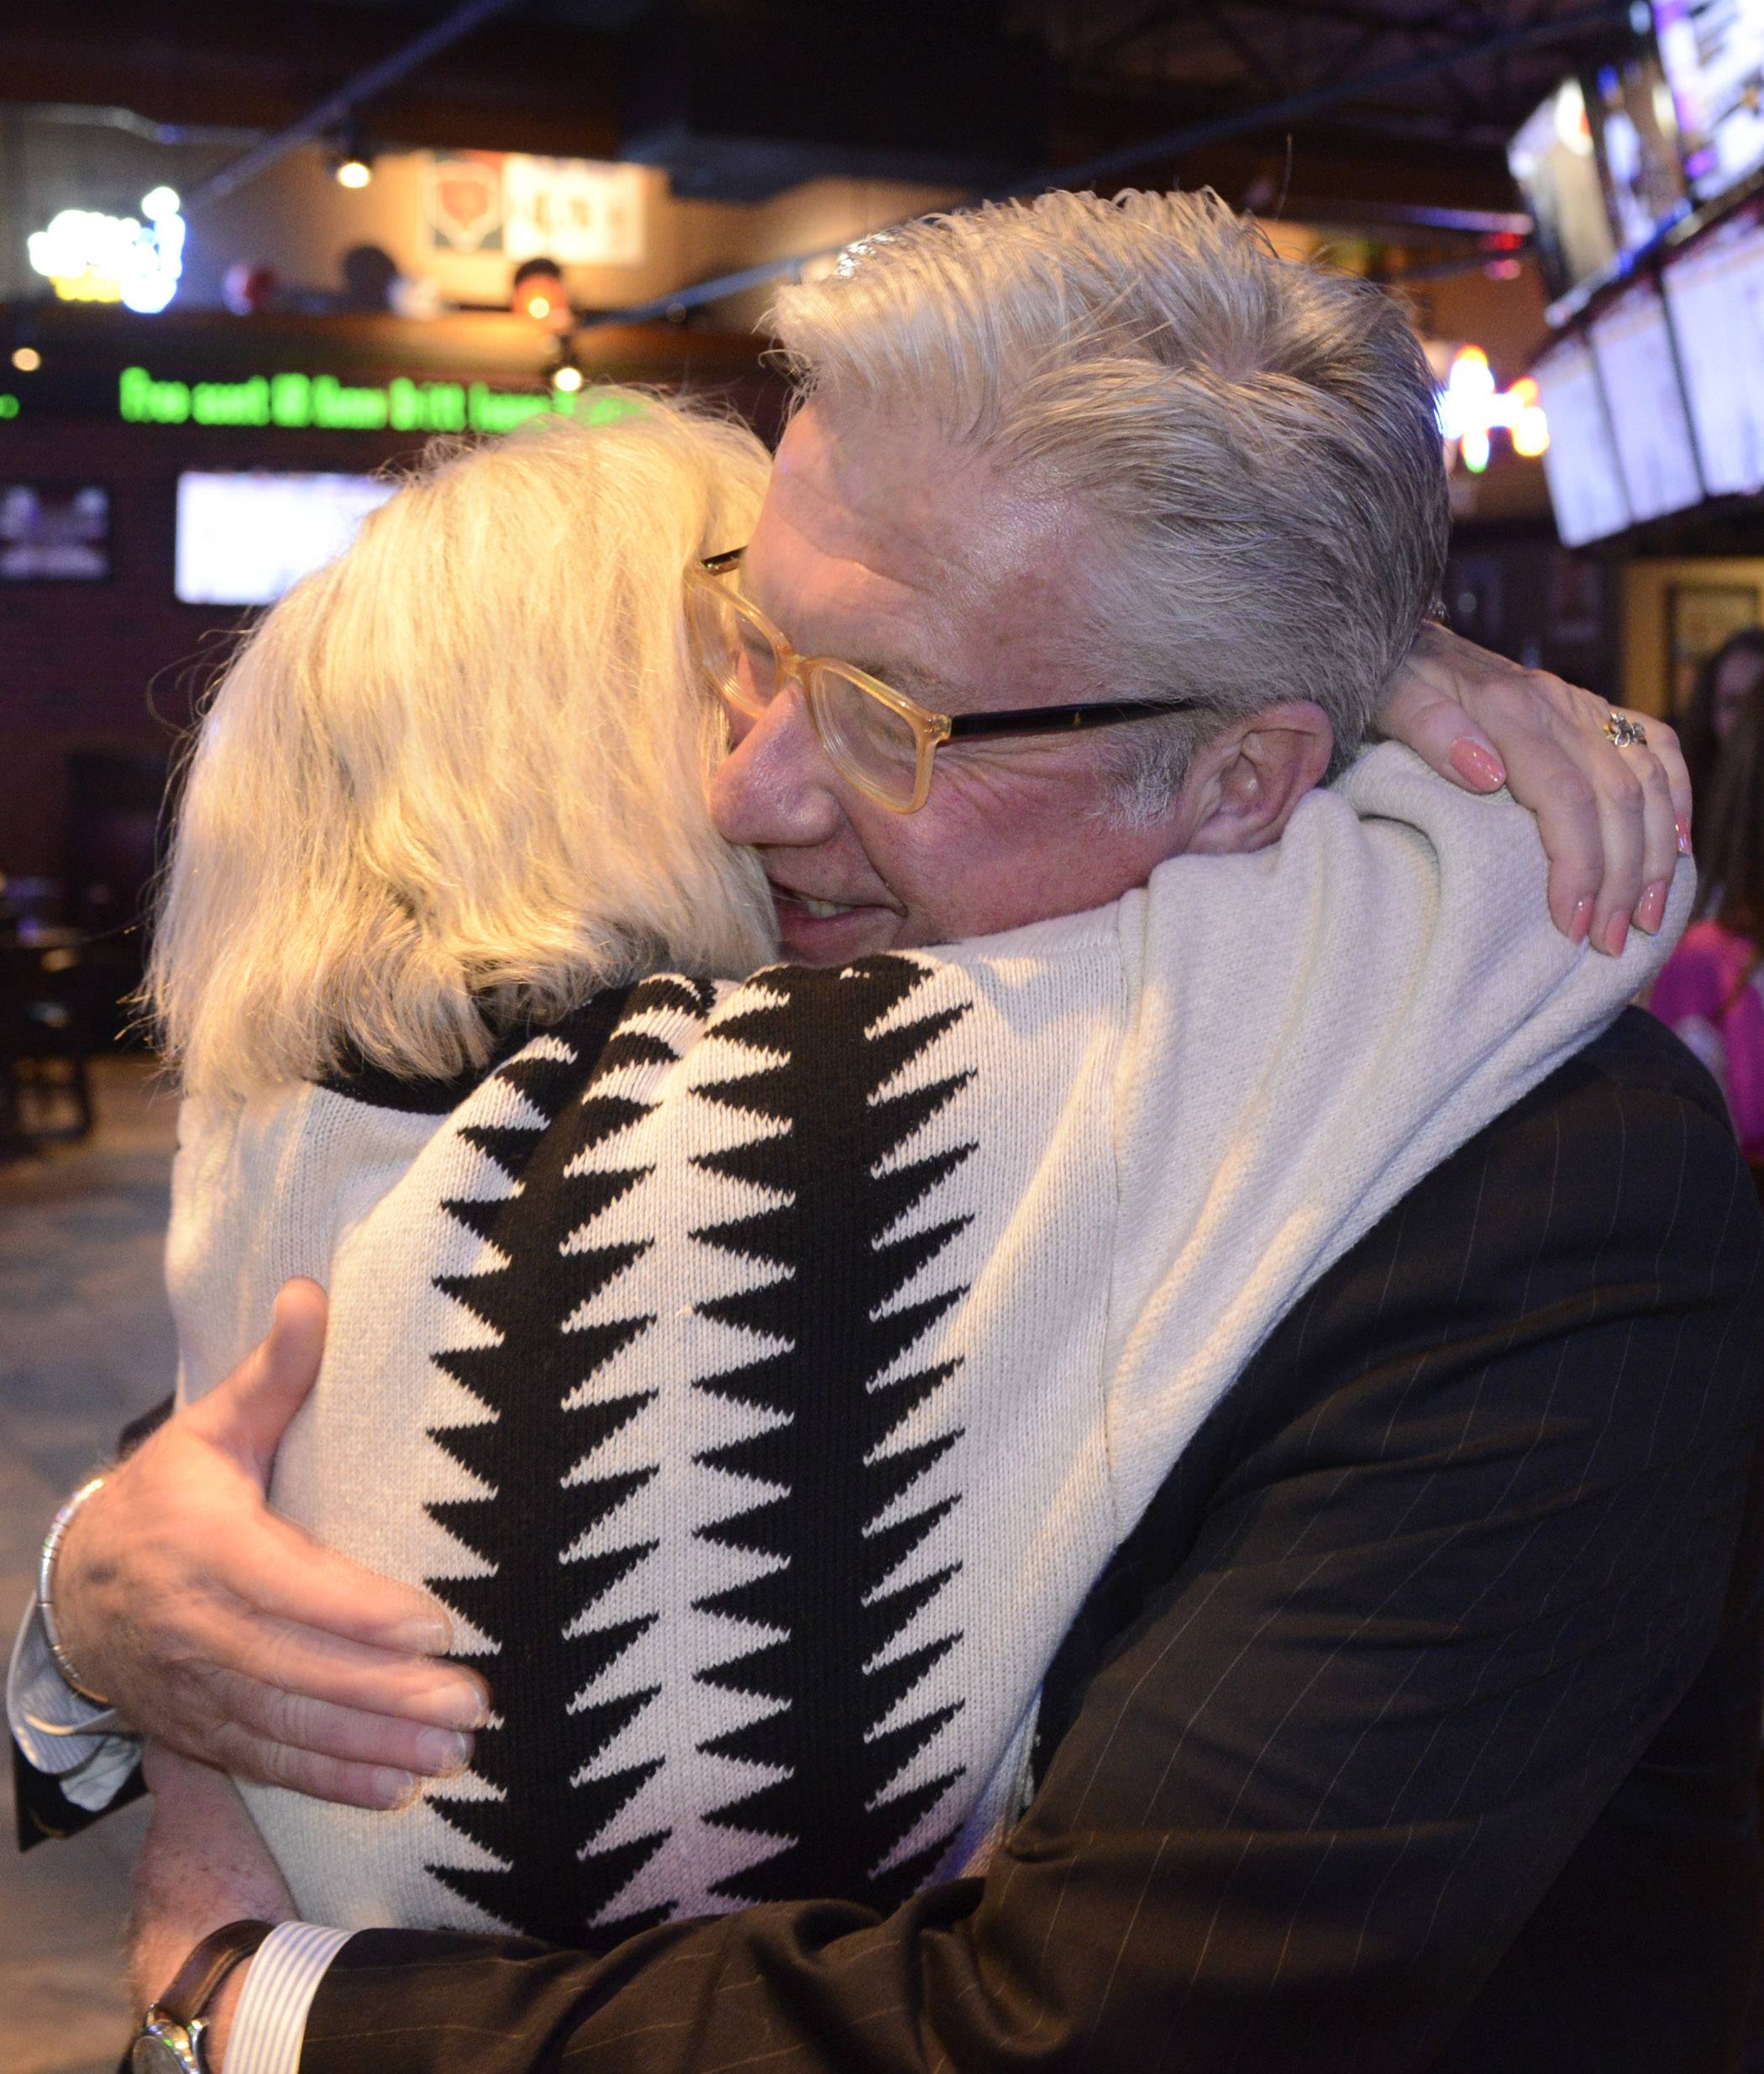 Dennis Anderson, Democratic candidate for the 14th Congressional District,embraces his wife Susan Glad-Anderson after claiming victory.